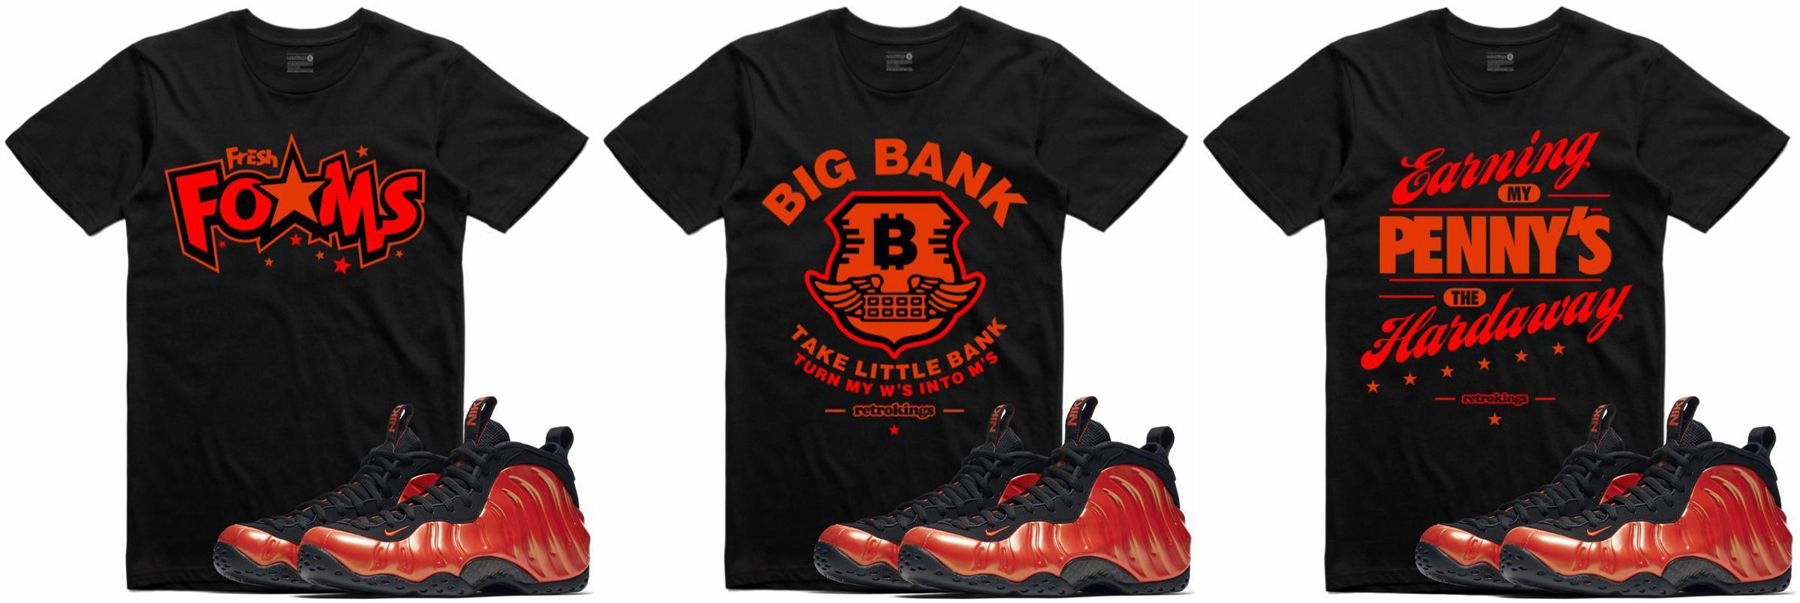 habanero-foamposite-sneaker-tee-shirt-retro-kings